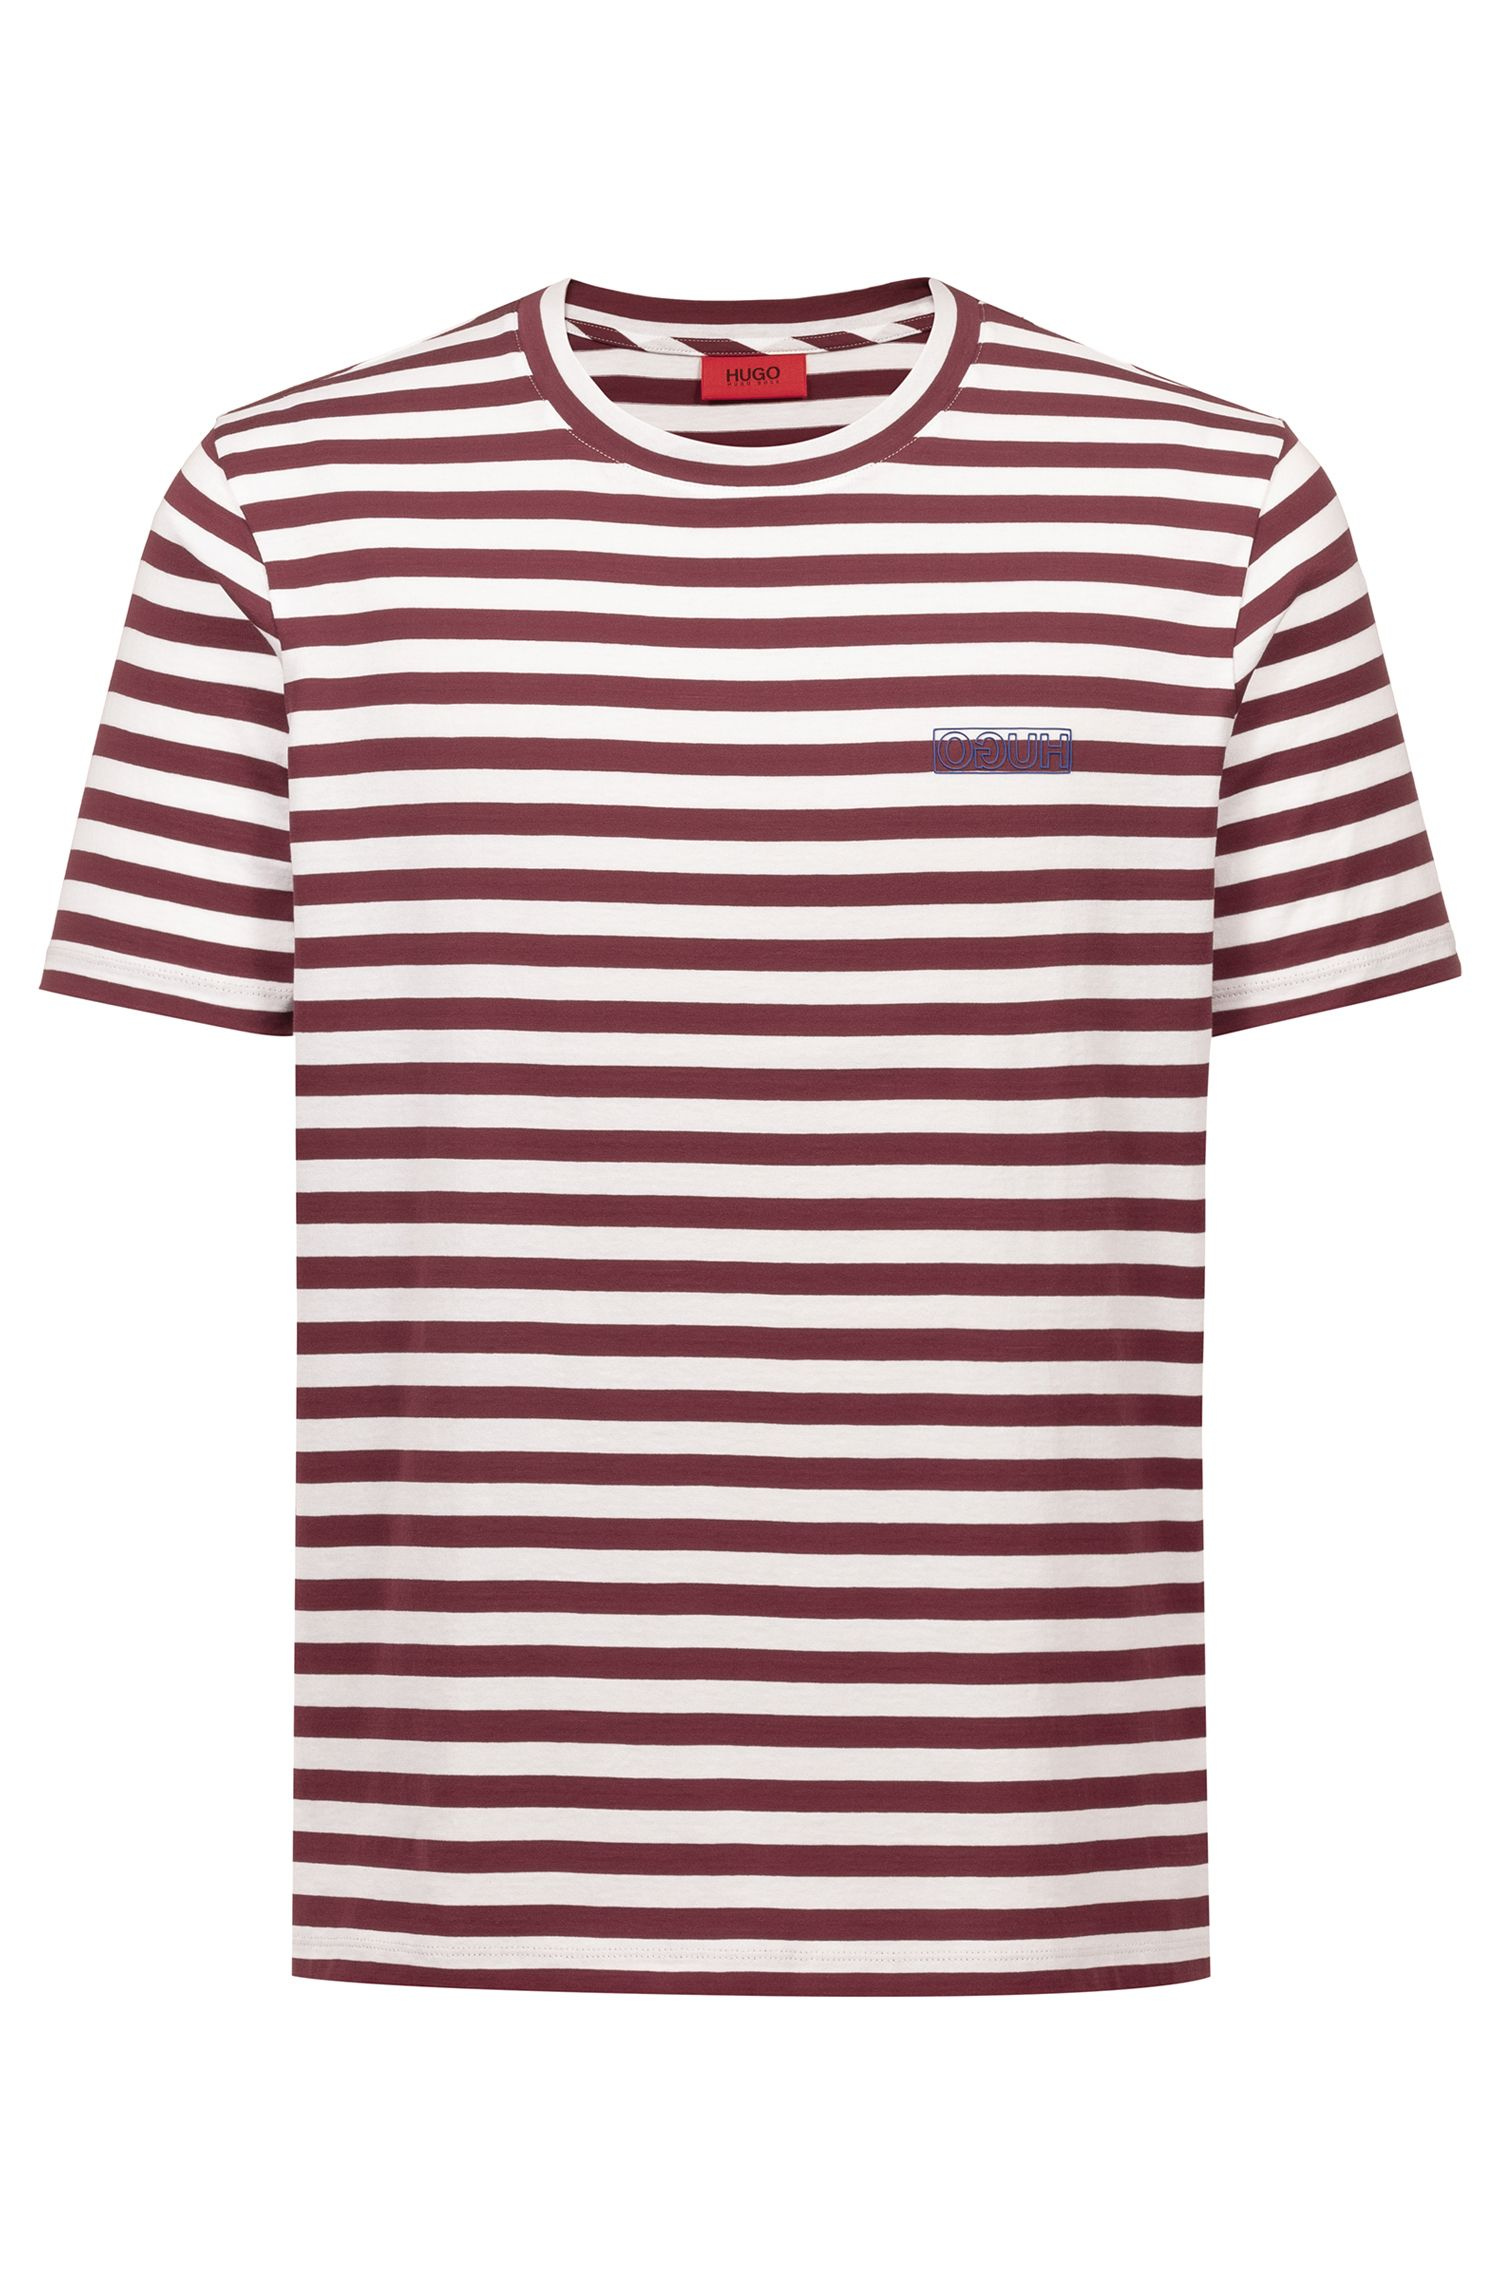 Hugo Boss - Striped T-shirt in single-jersey cotton with reverse logo - 1